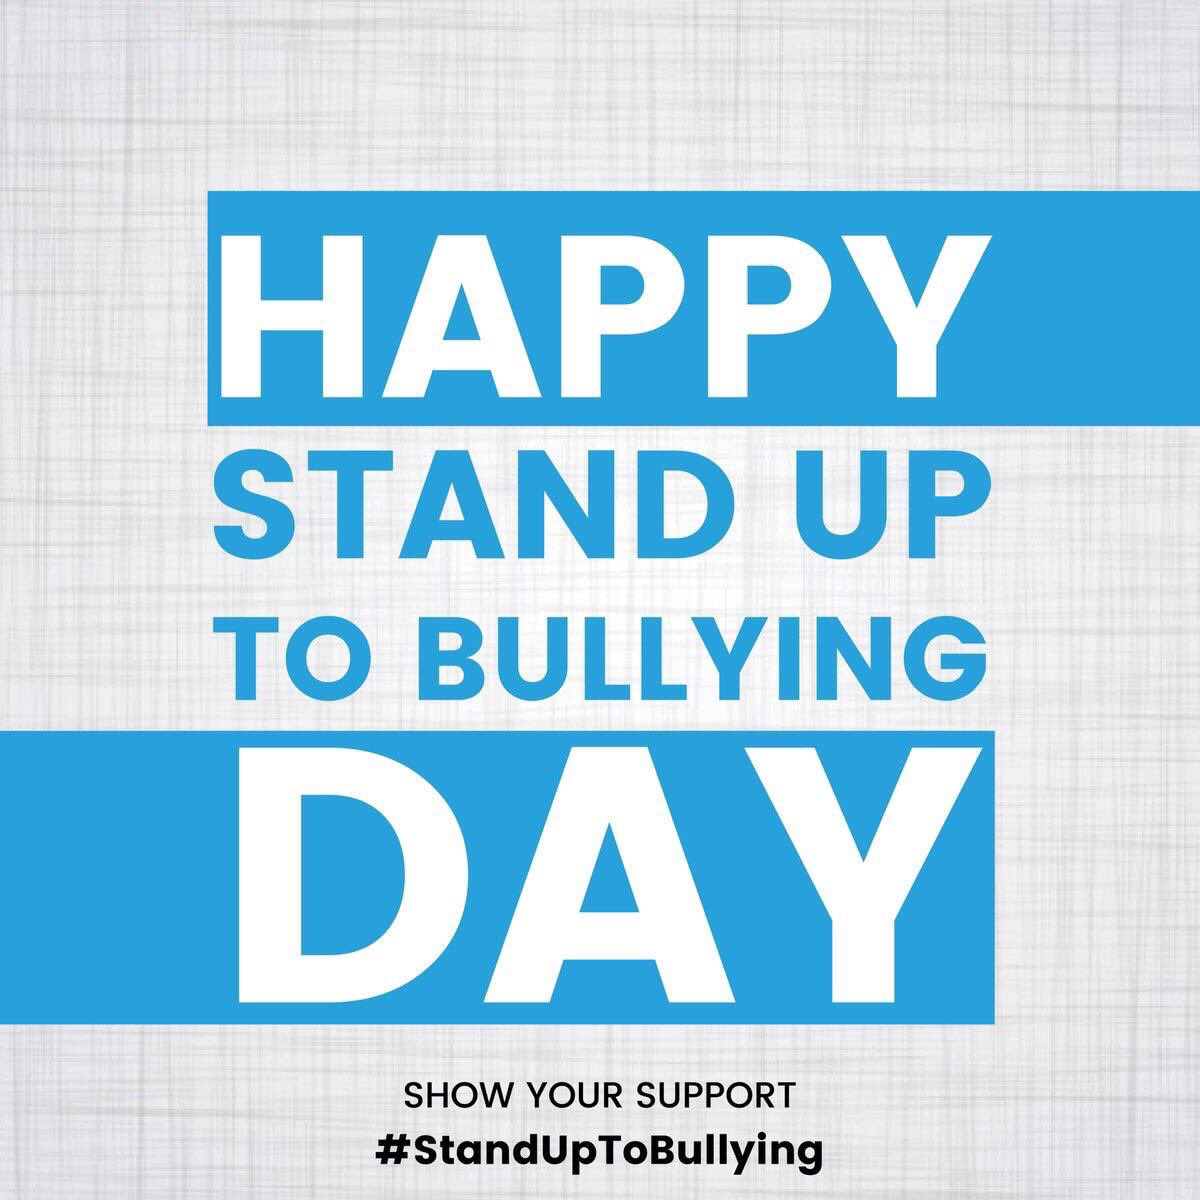 It's #StandUpToBullying day ... You don't have to suffer in silence https://t.co/2OPZu6fAHU